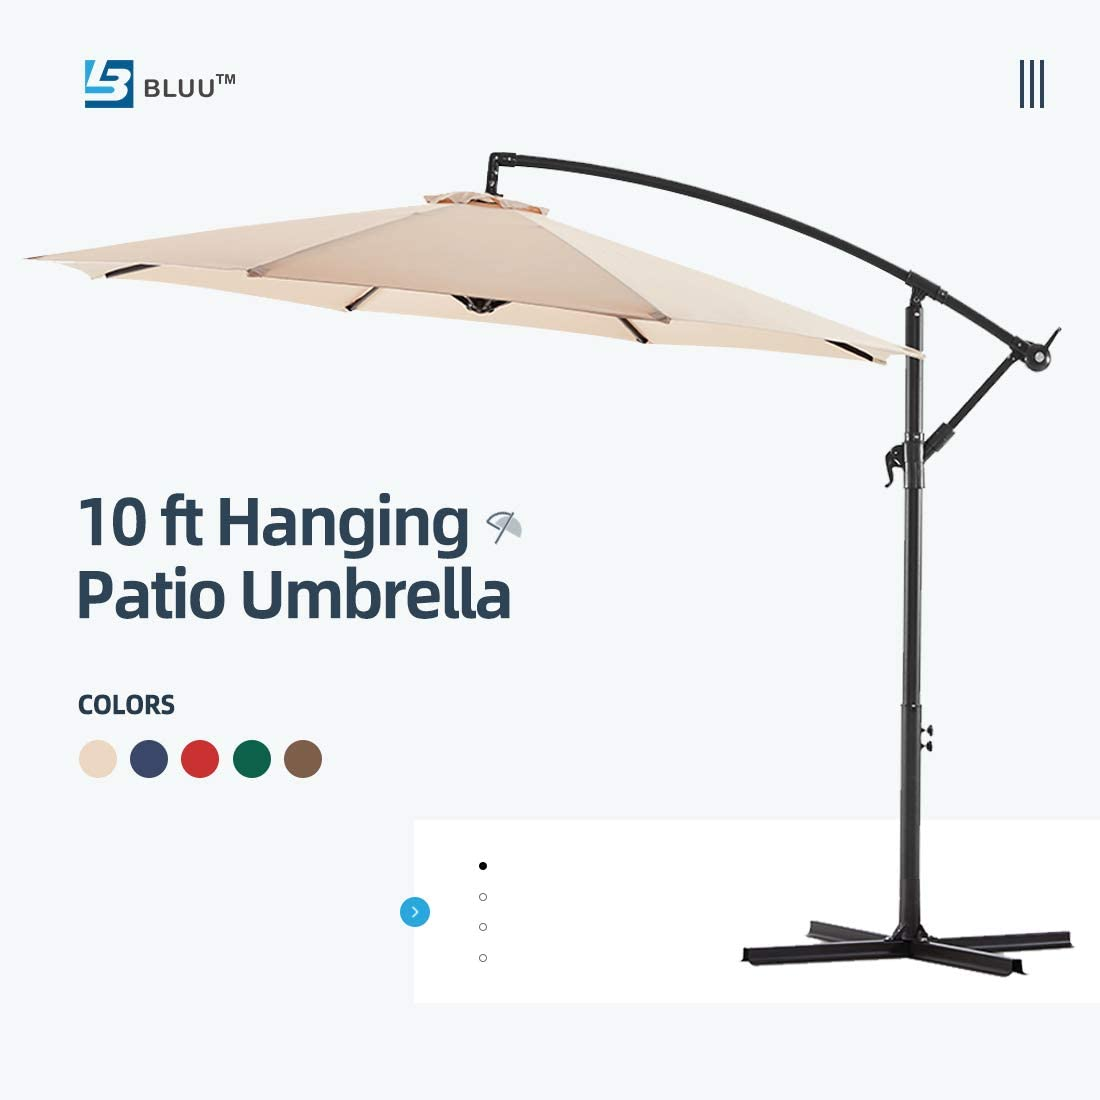 WUFF Bluu 10ft Patio Offset Umbrella Cantilever Umbrella Hanging Market Umbrella Outdoor Umbrellas with Crank & Cross Bases